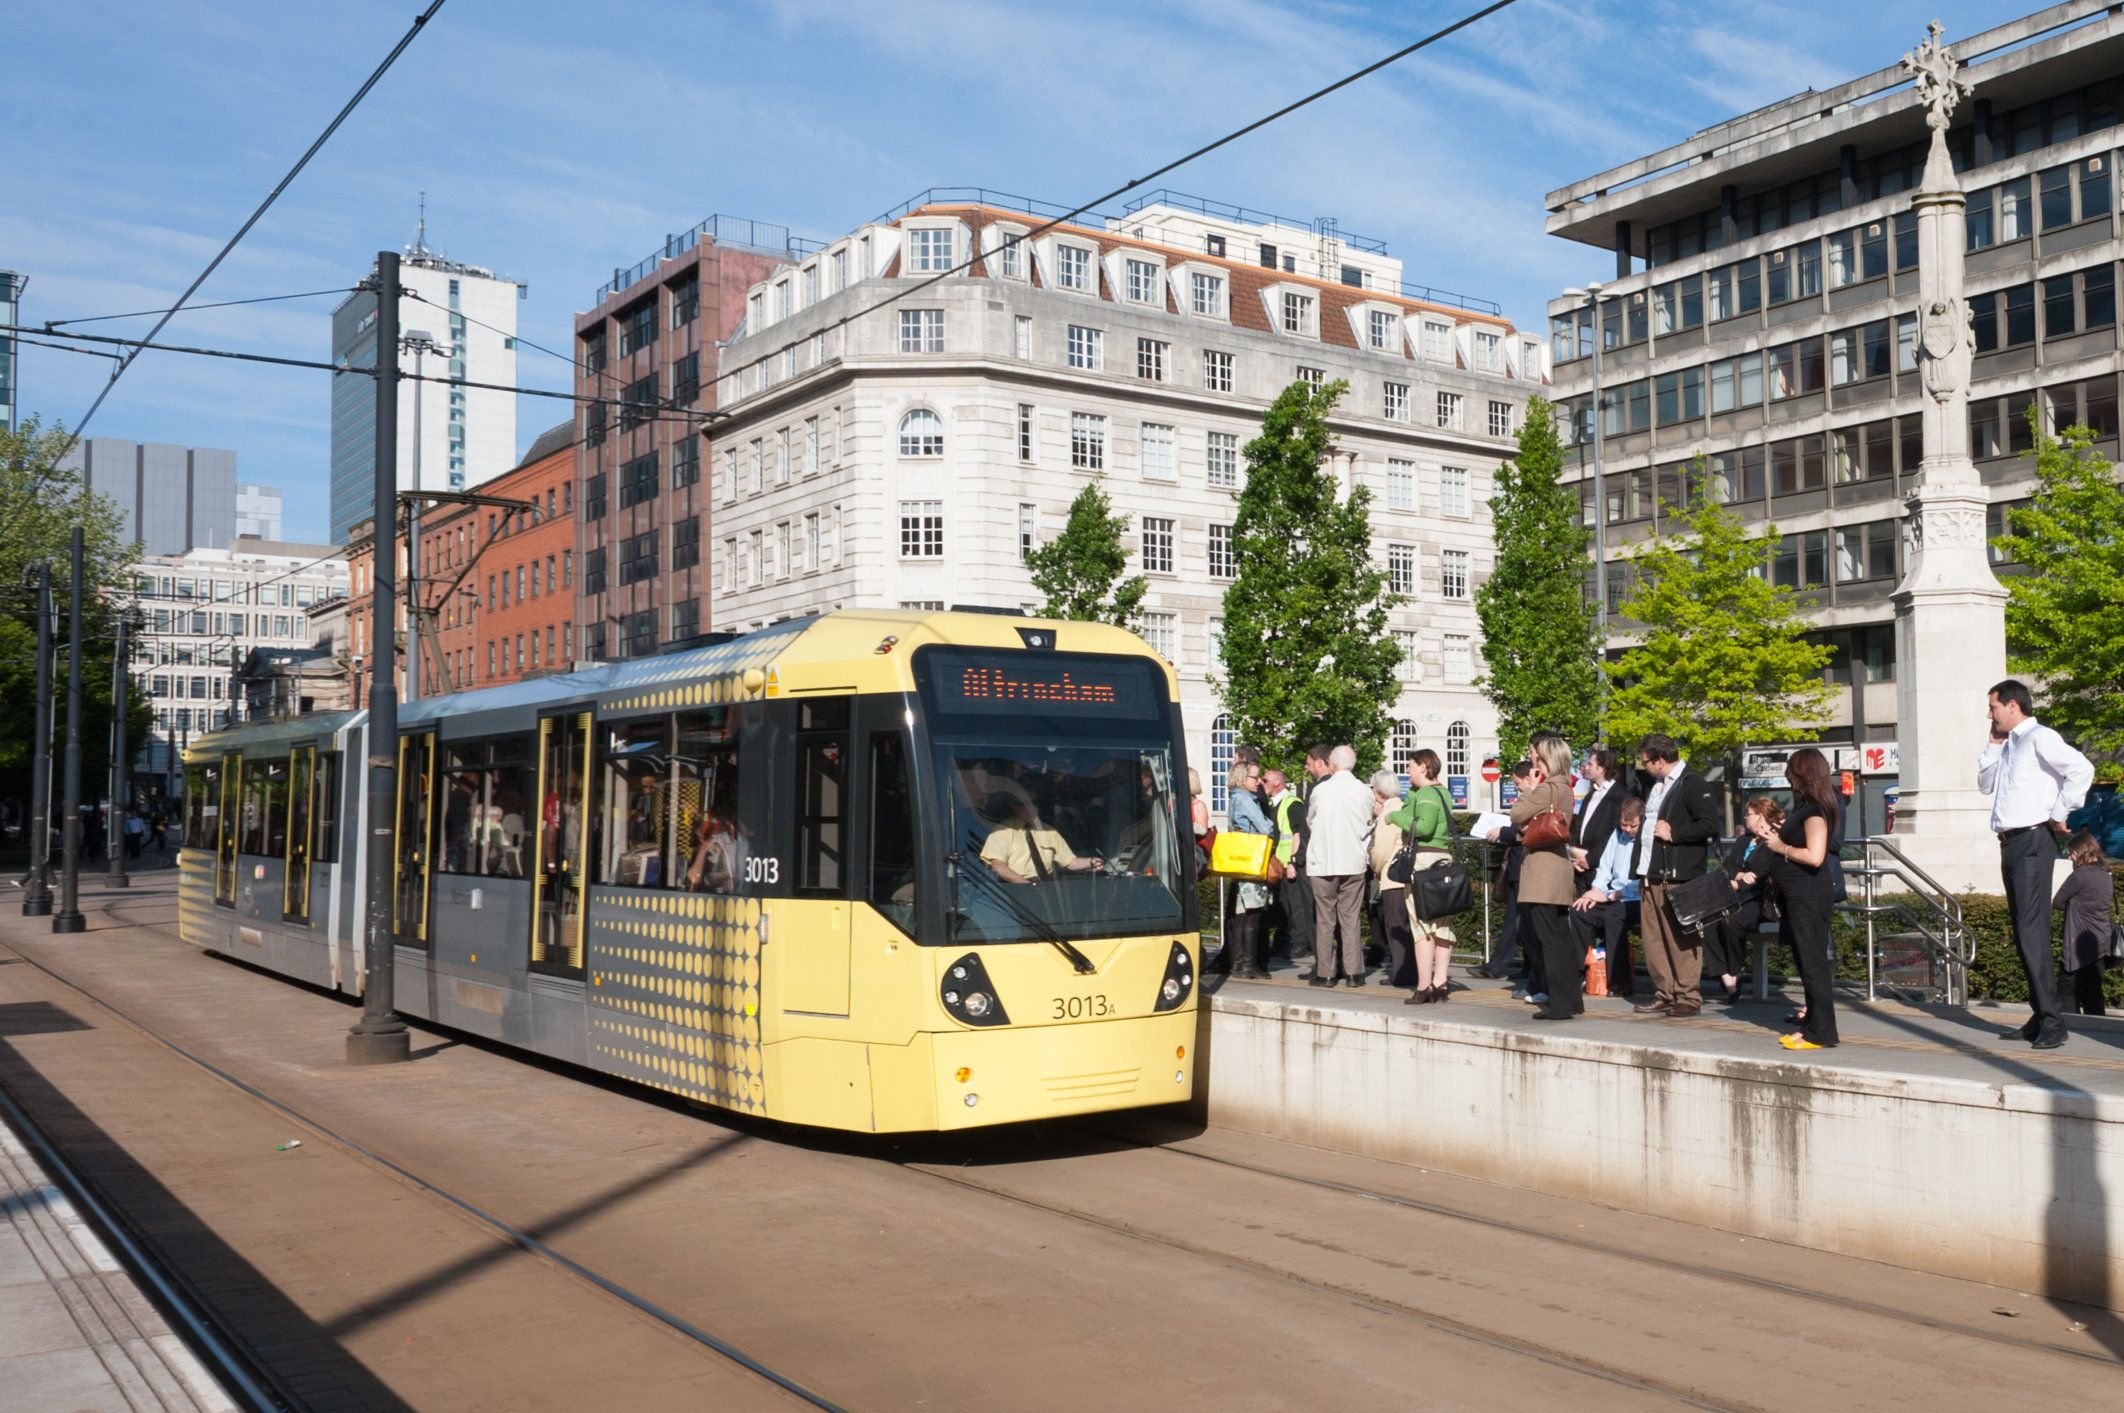 Metrolink station at St Annes square in Manchester City centre. A busy station on this tram route.